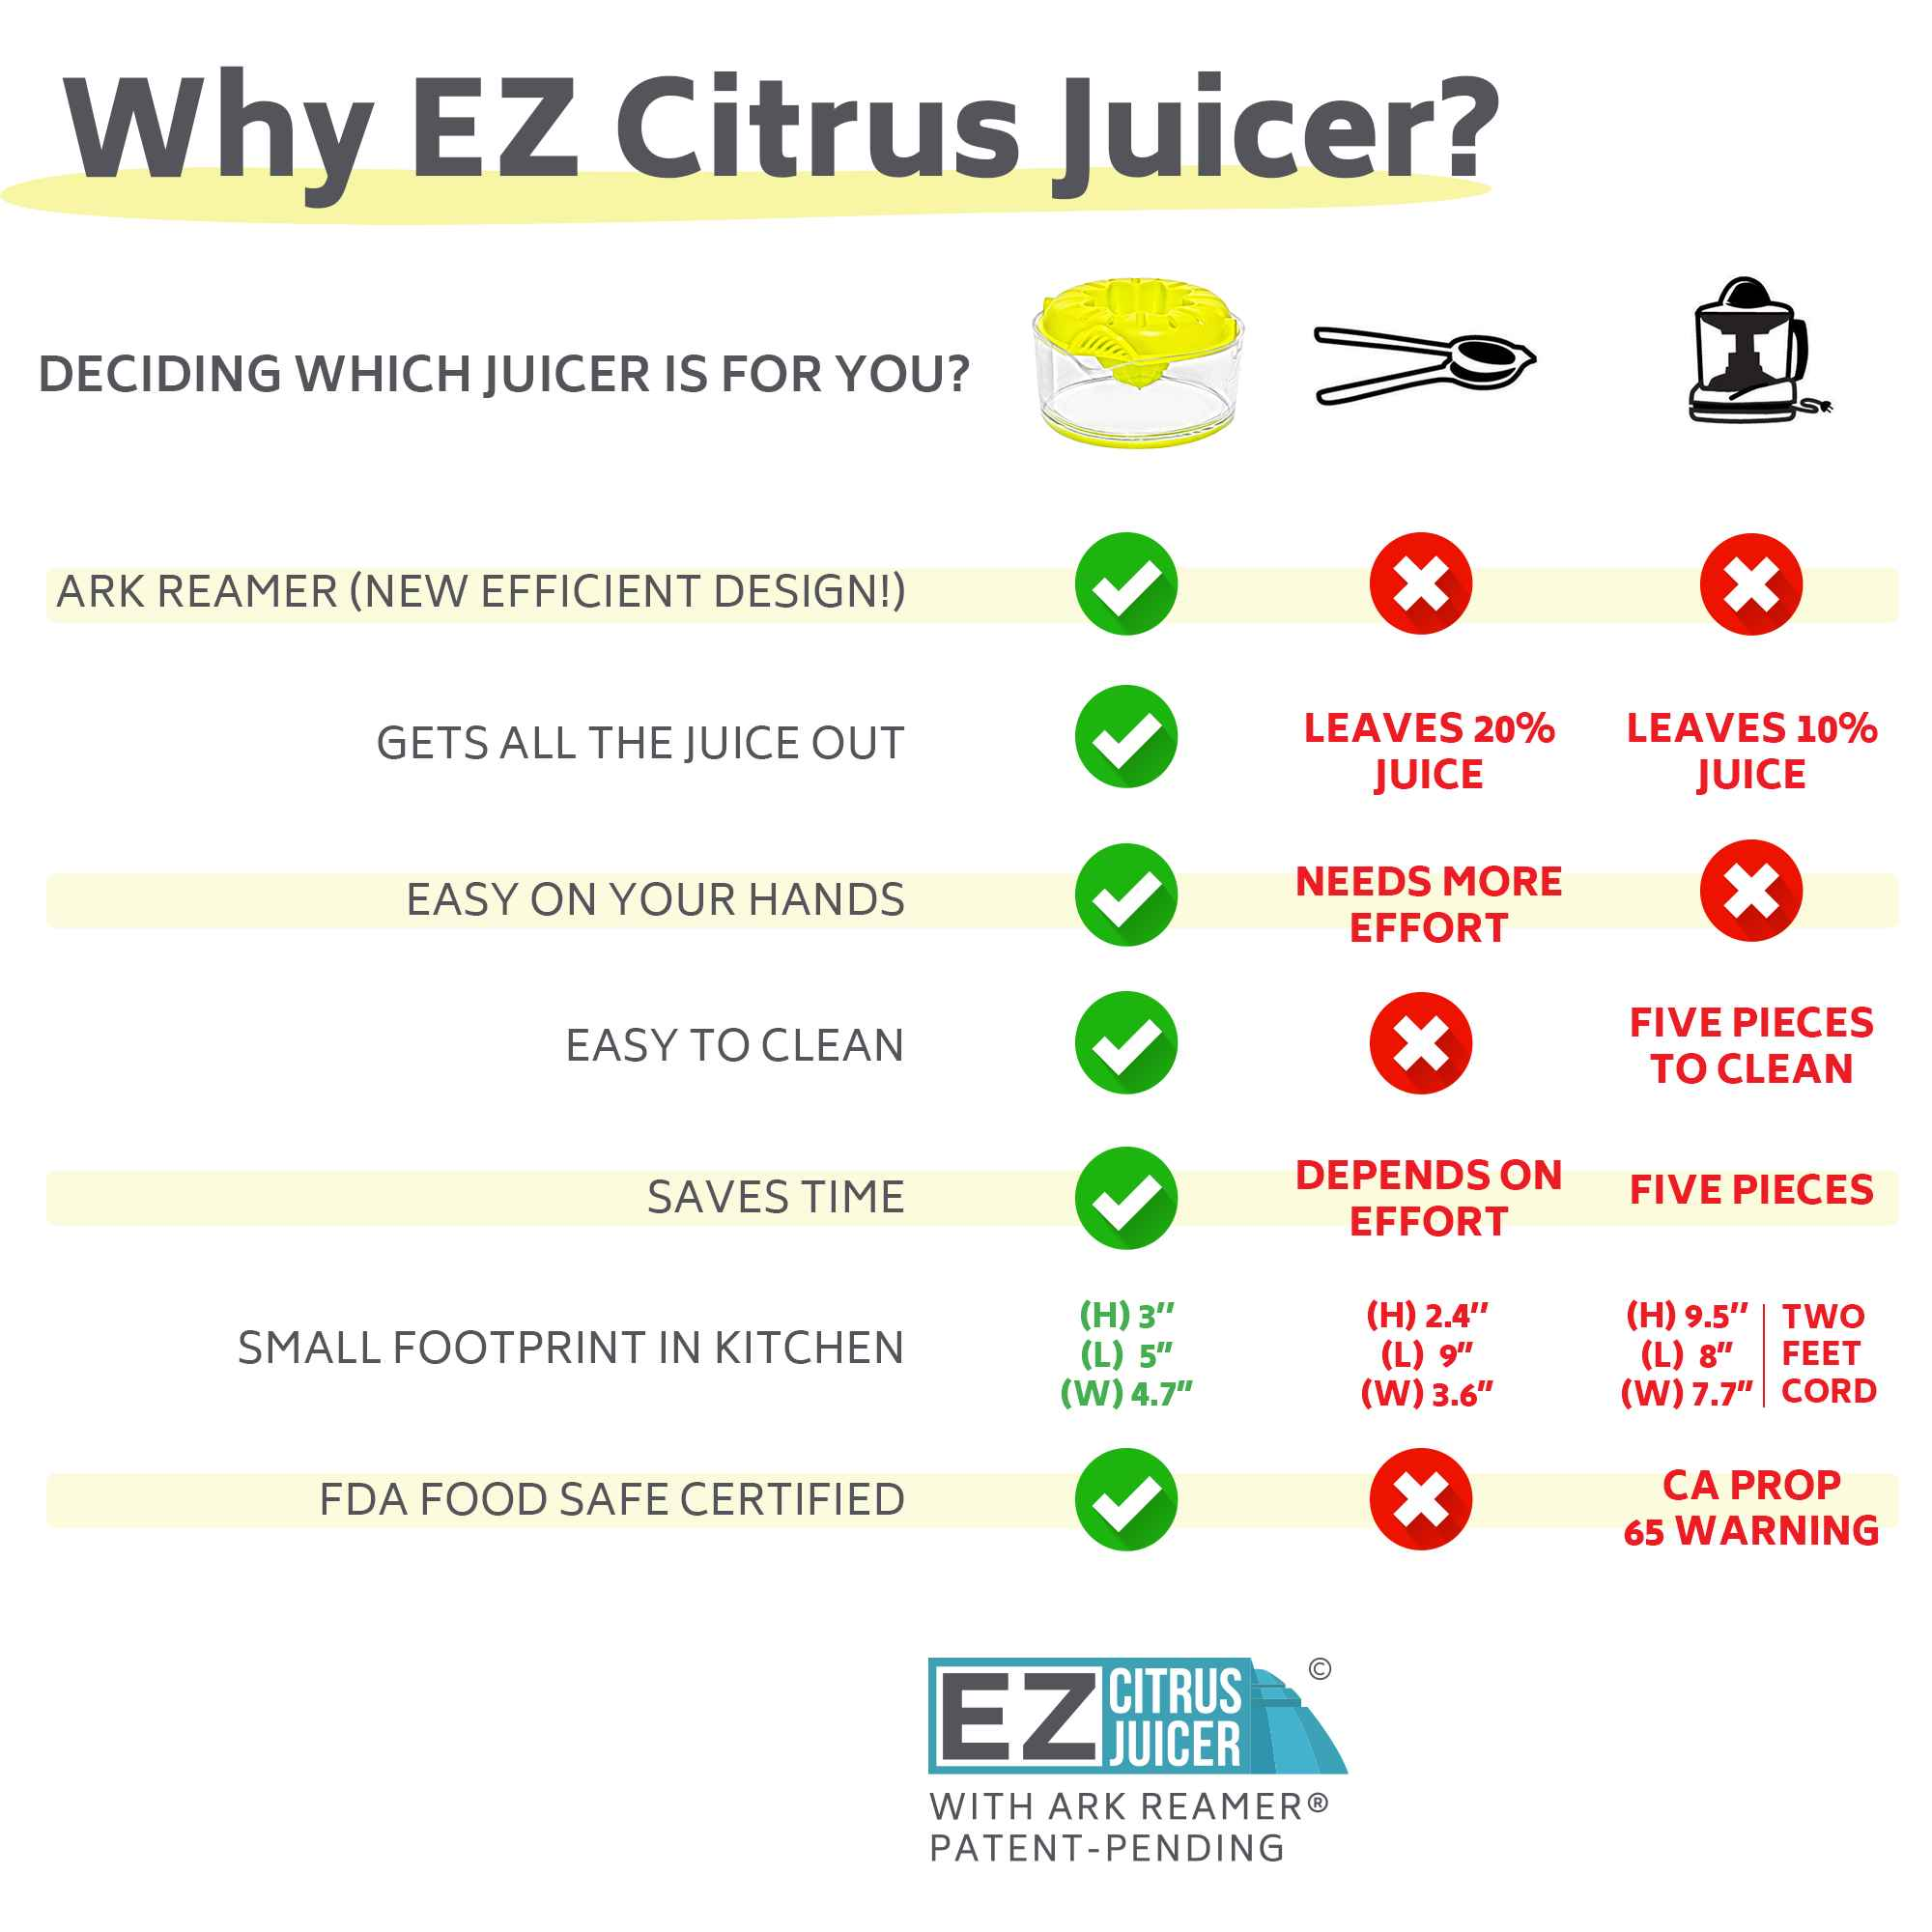 why ez citrus juicer, why easy lemon water, why ultra-efficient lemon juicer - save time, easy on hands, better than lemon squeezers, electric citrus juicers